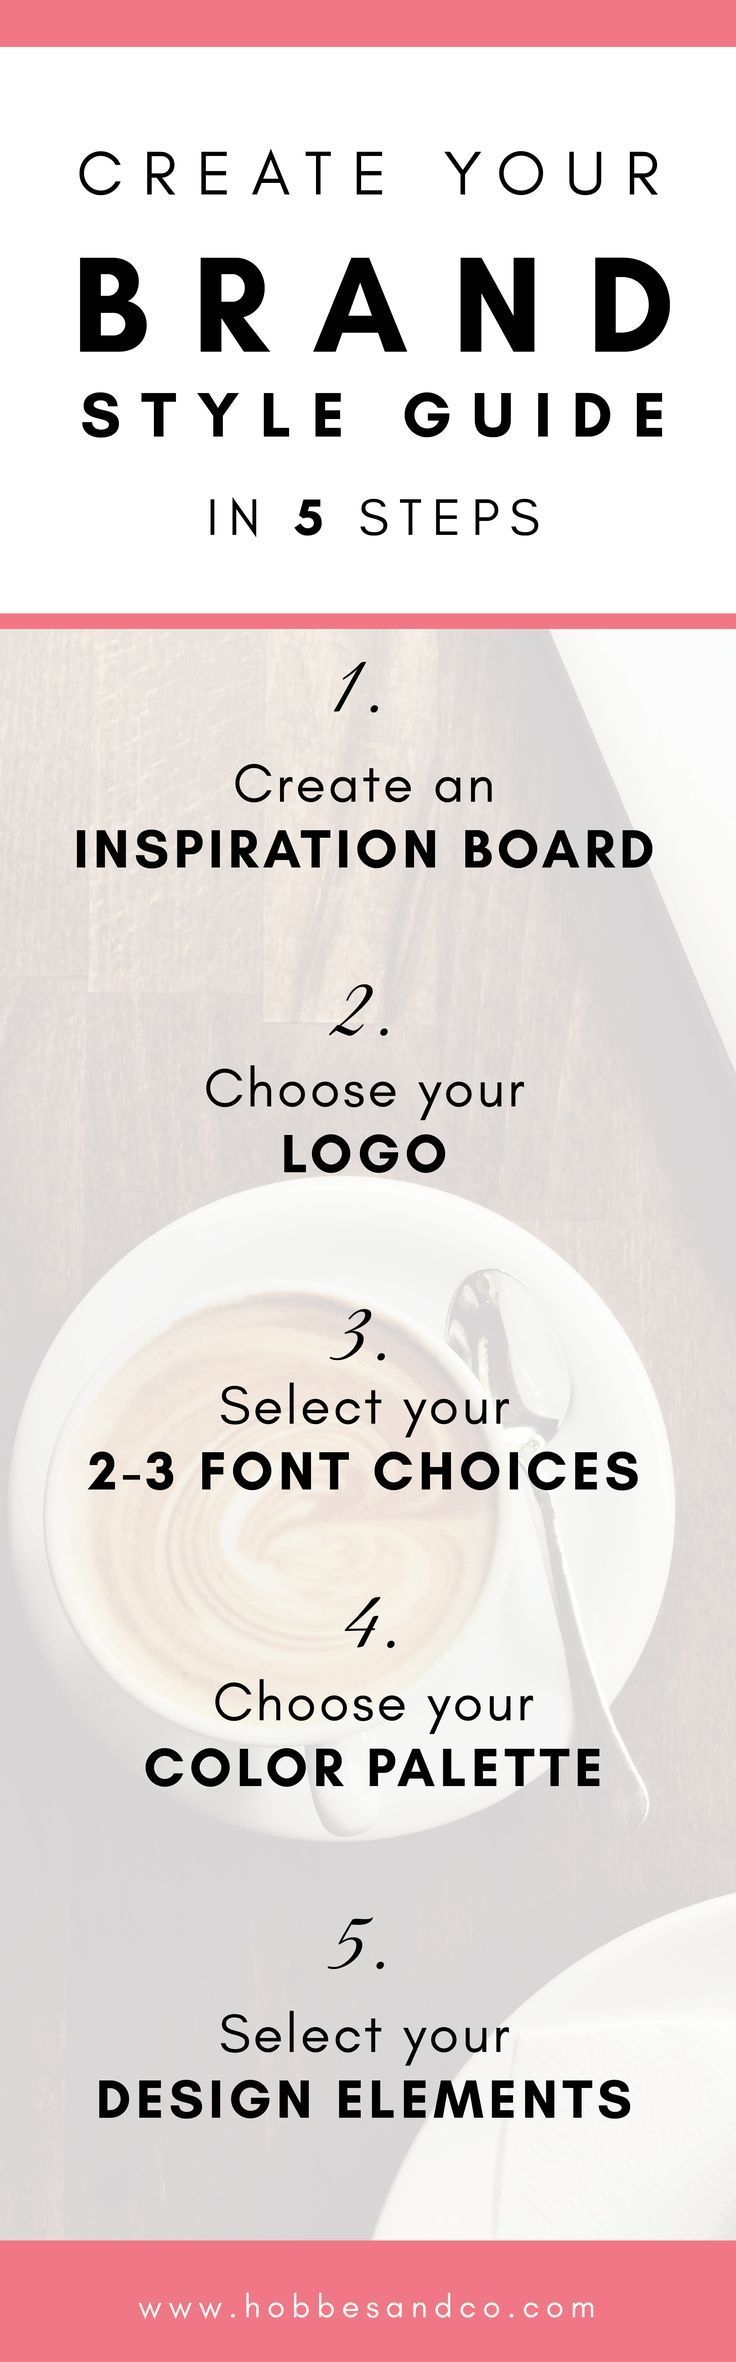 Create your Brand Style Guide in 5 Steps via /claredrake1/